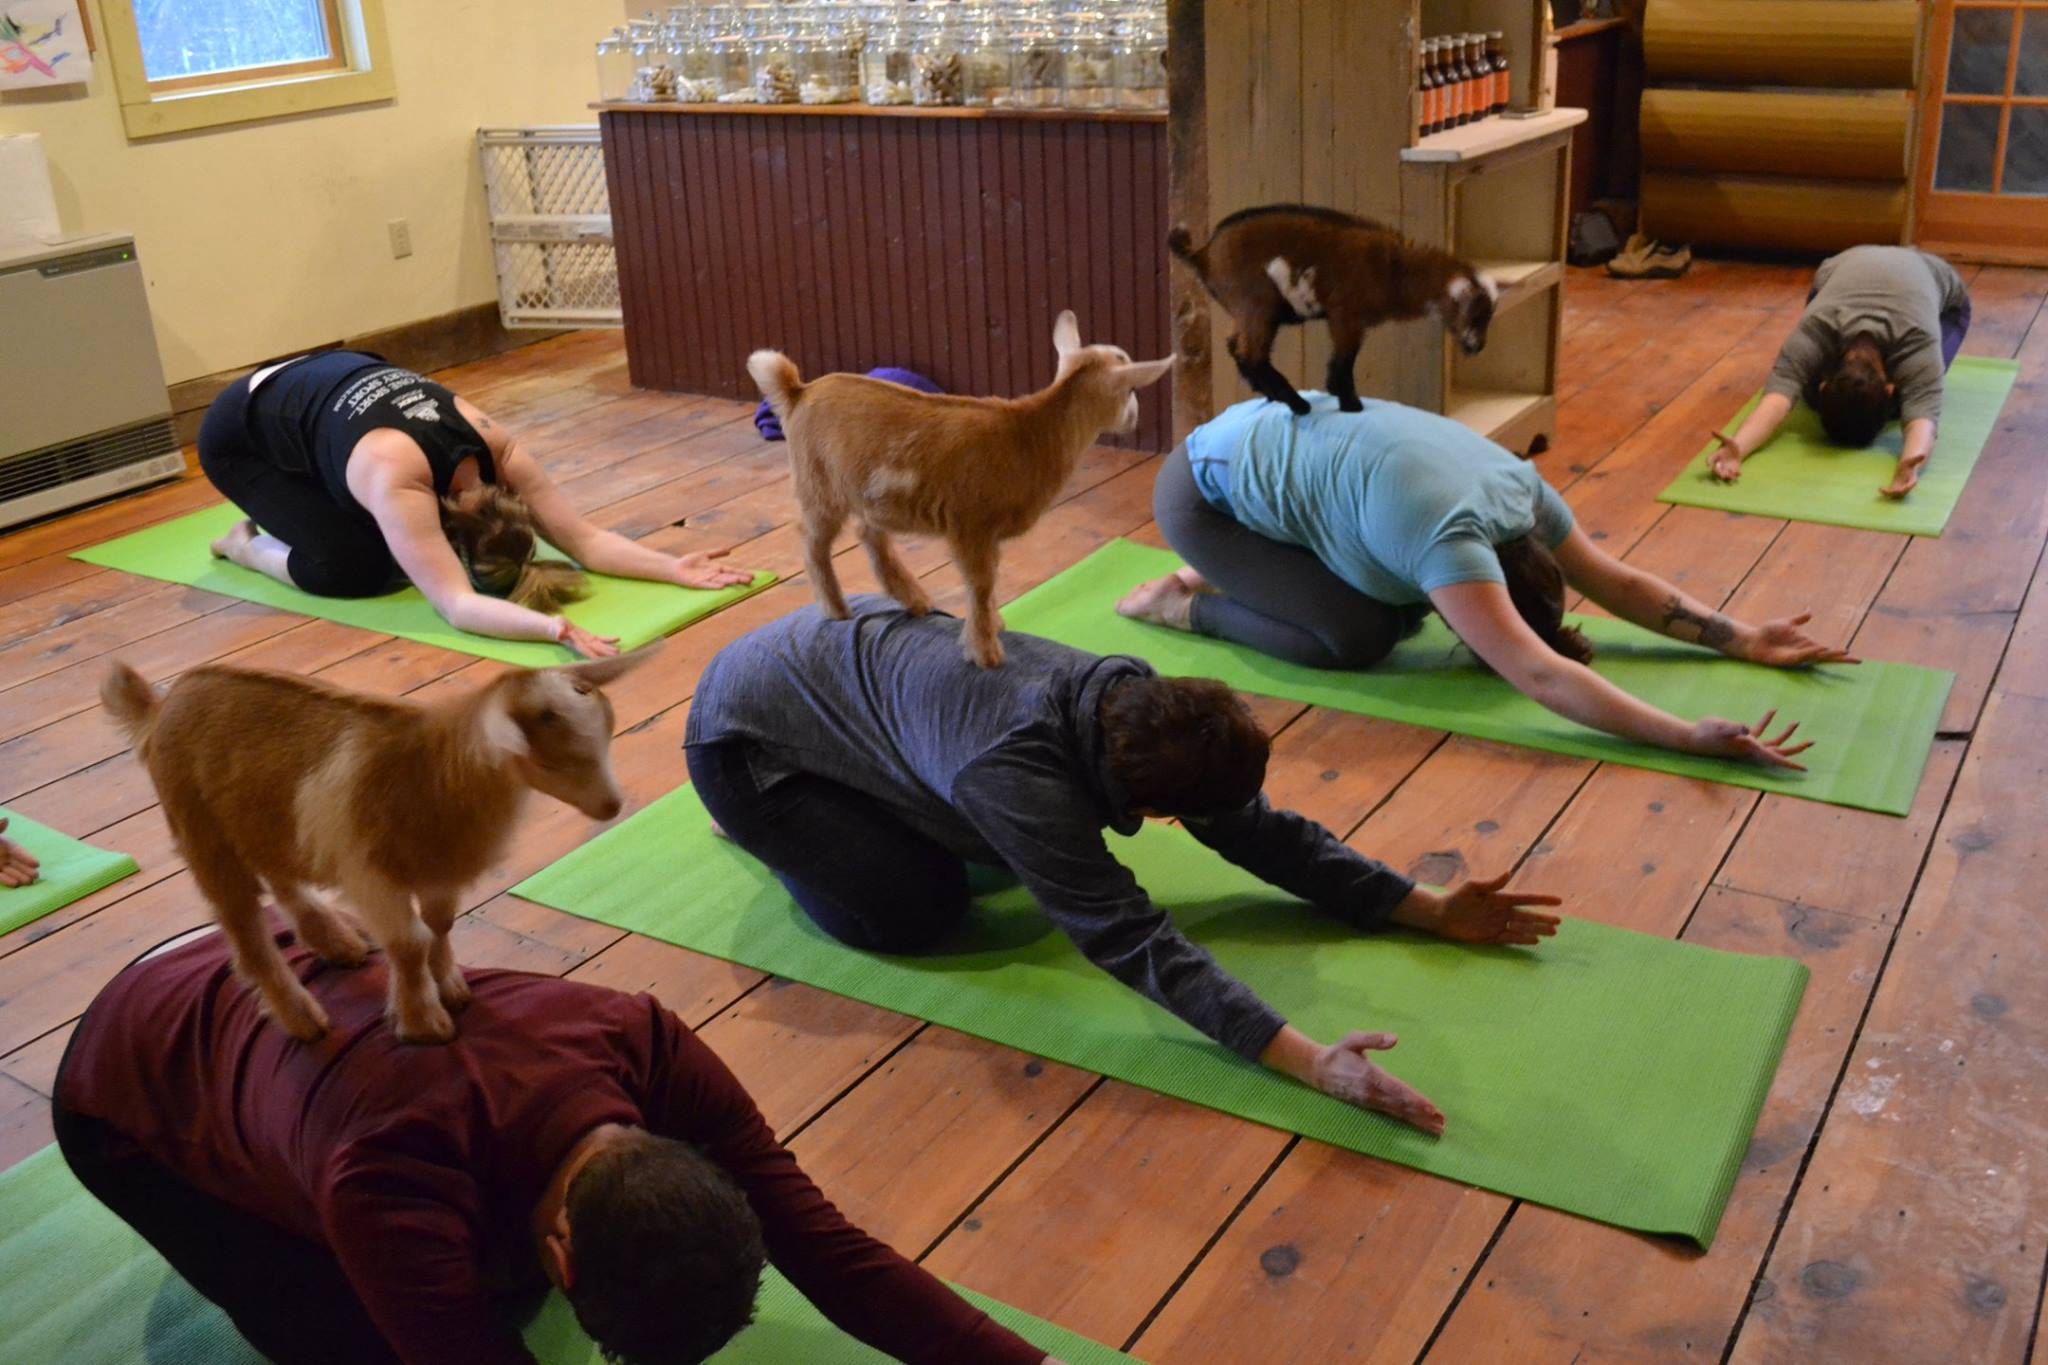 Goat yoga is taking off around the country, and now you can take a class in New England. (Jenness Farm)